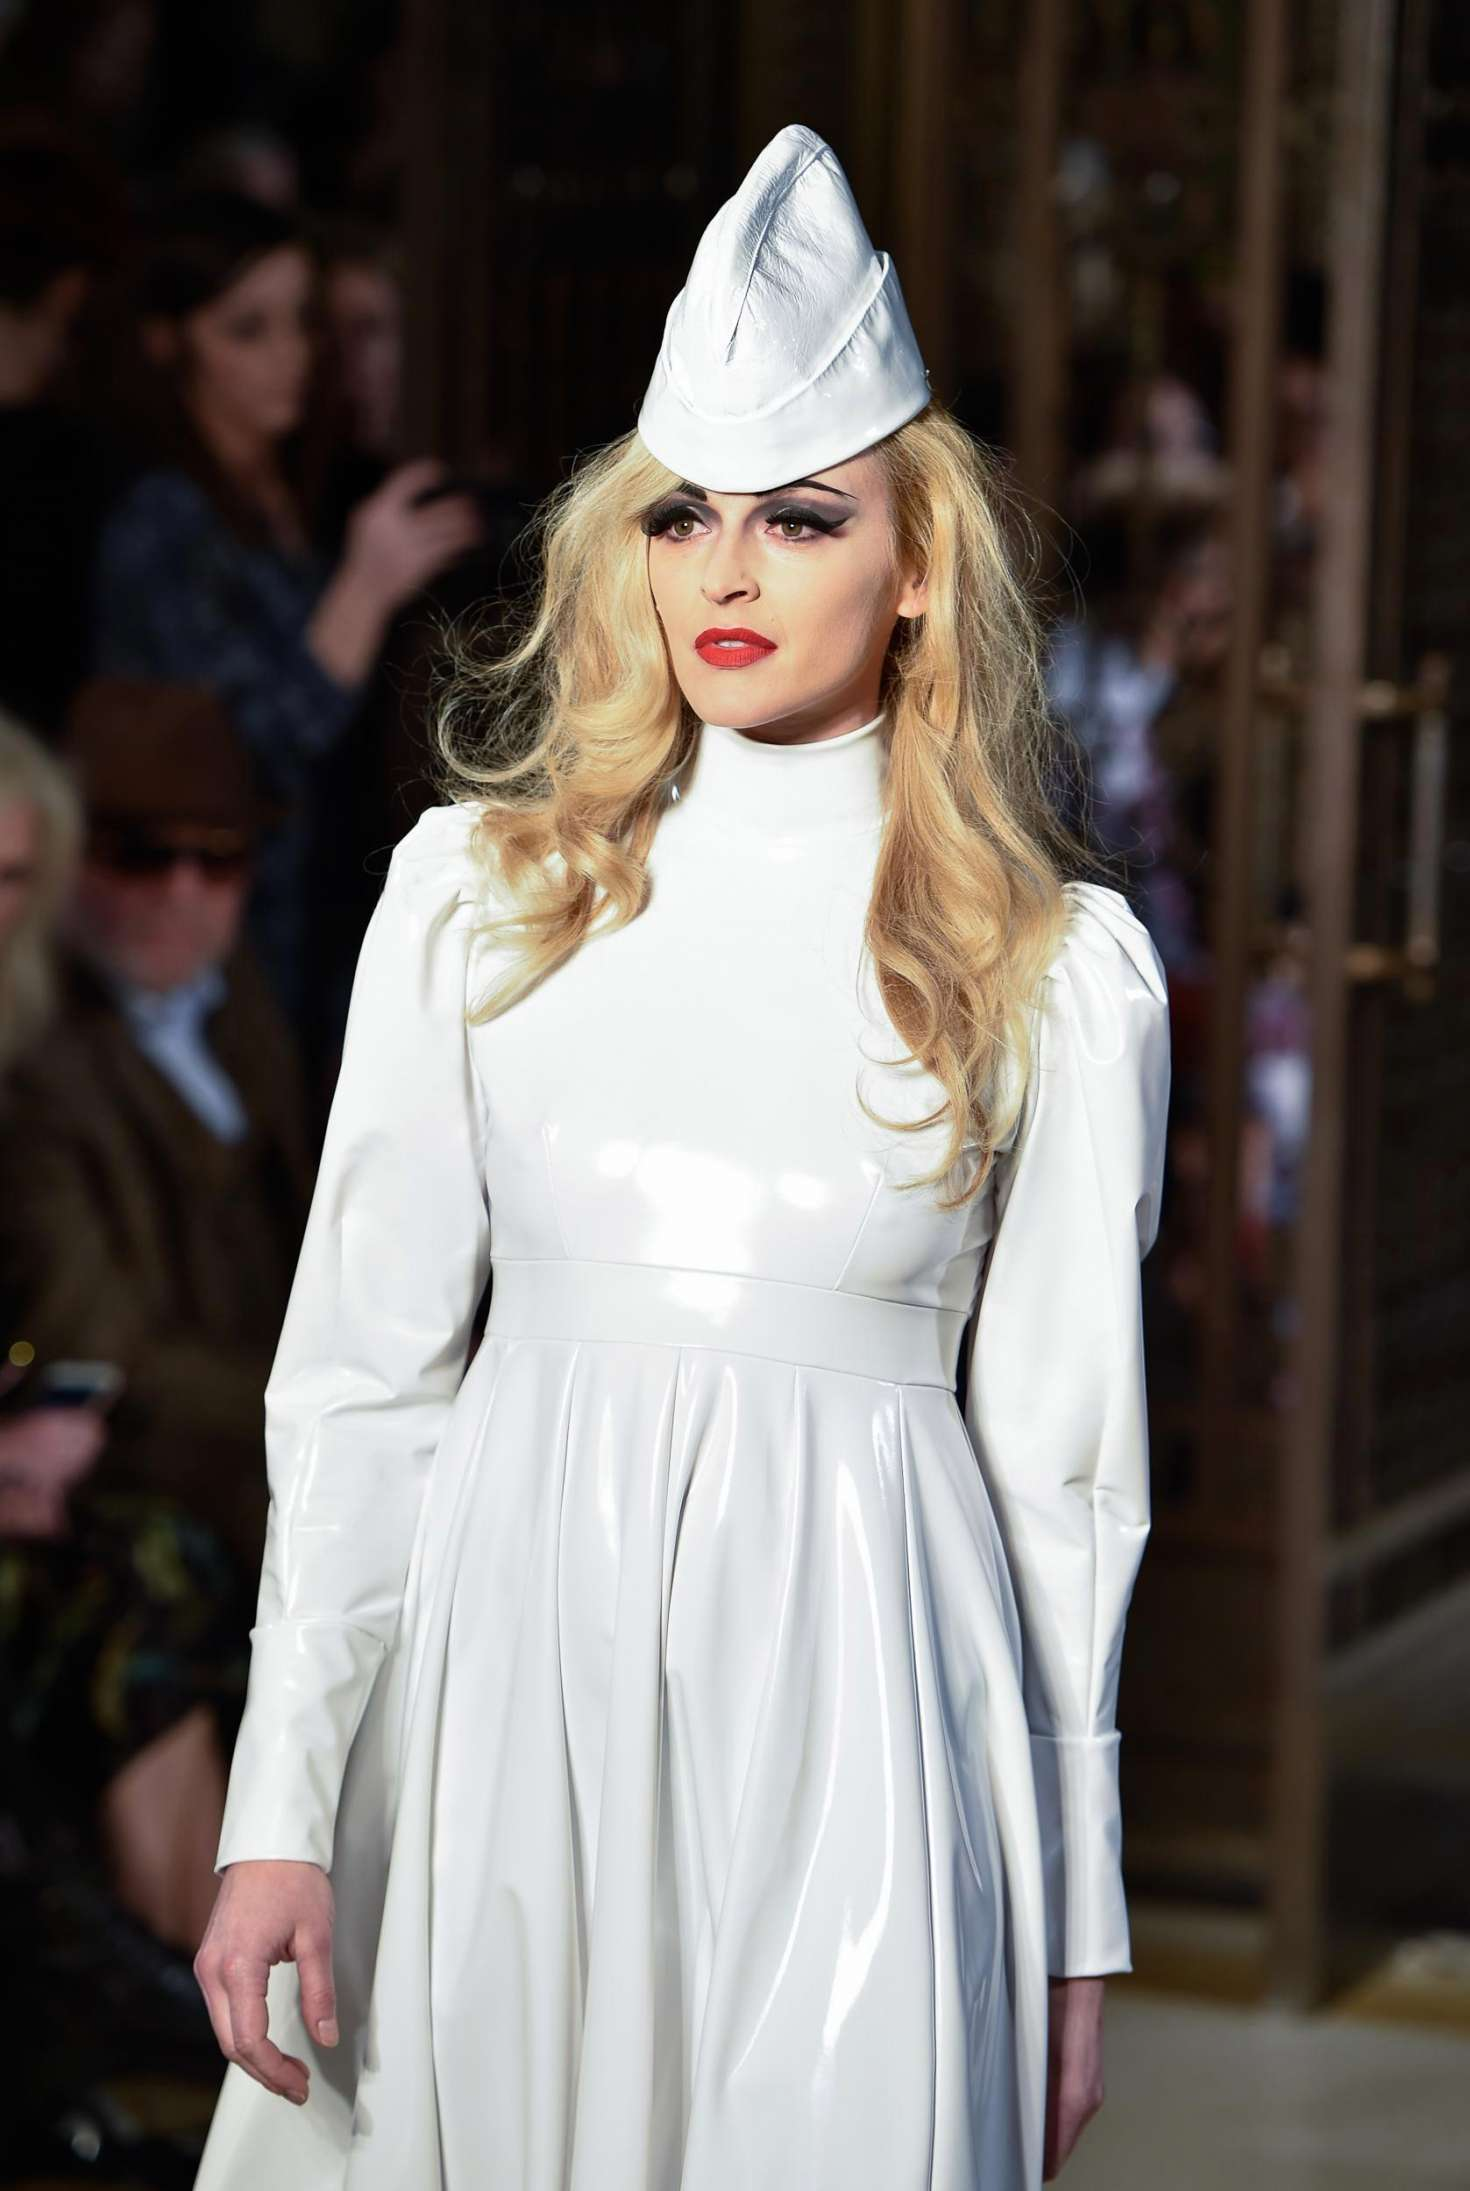 Fearne Cotton - Pam Hogg Show at 2017 LFW in London